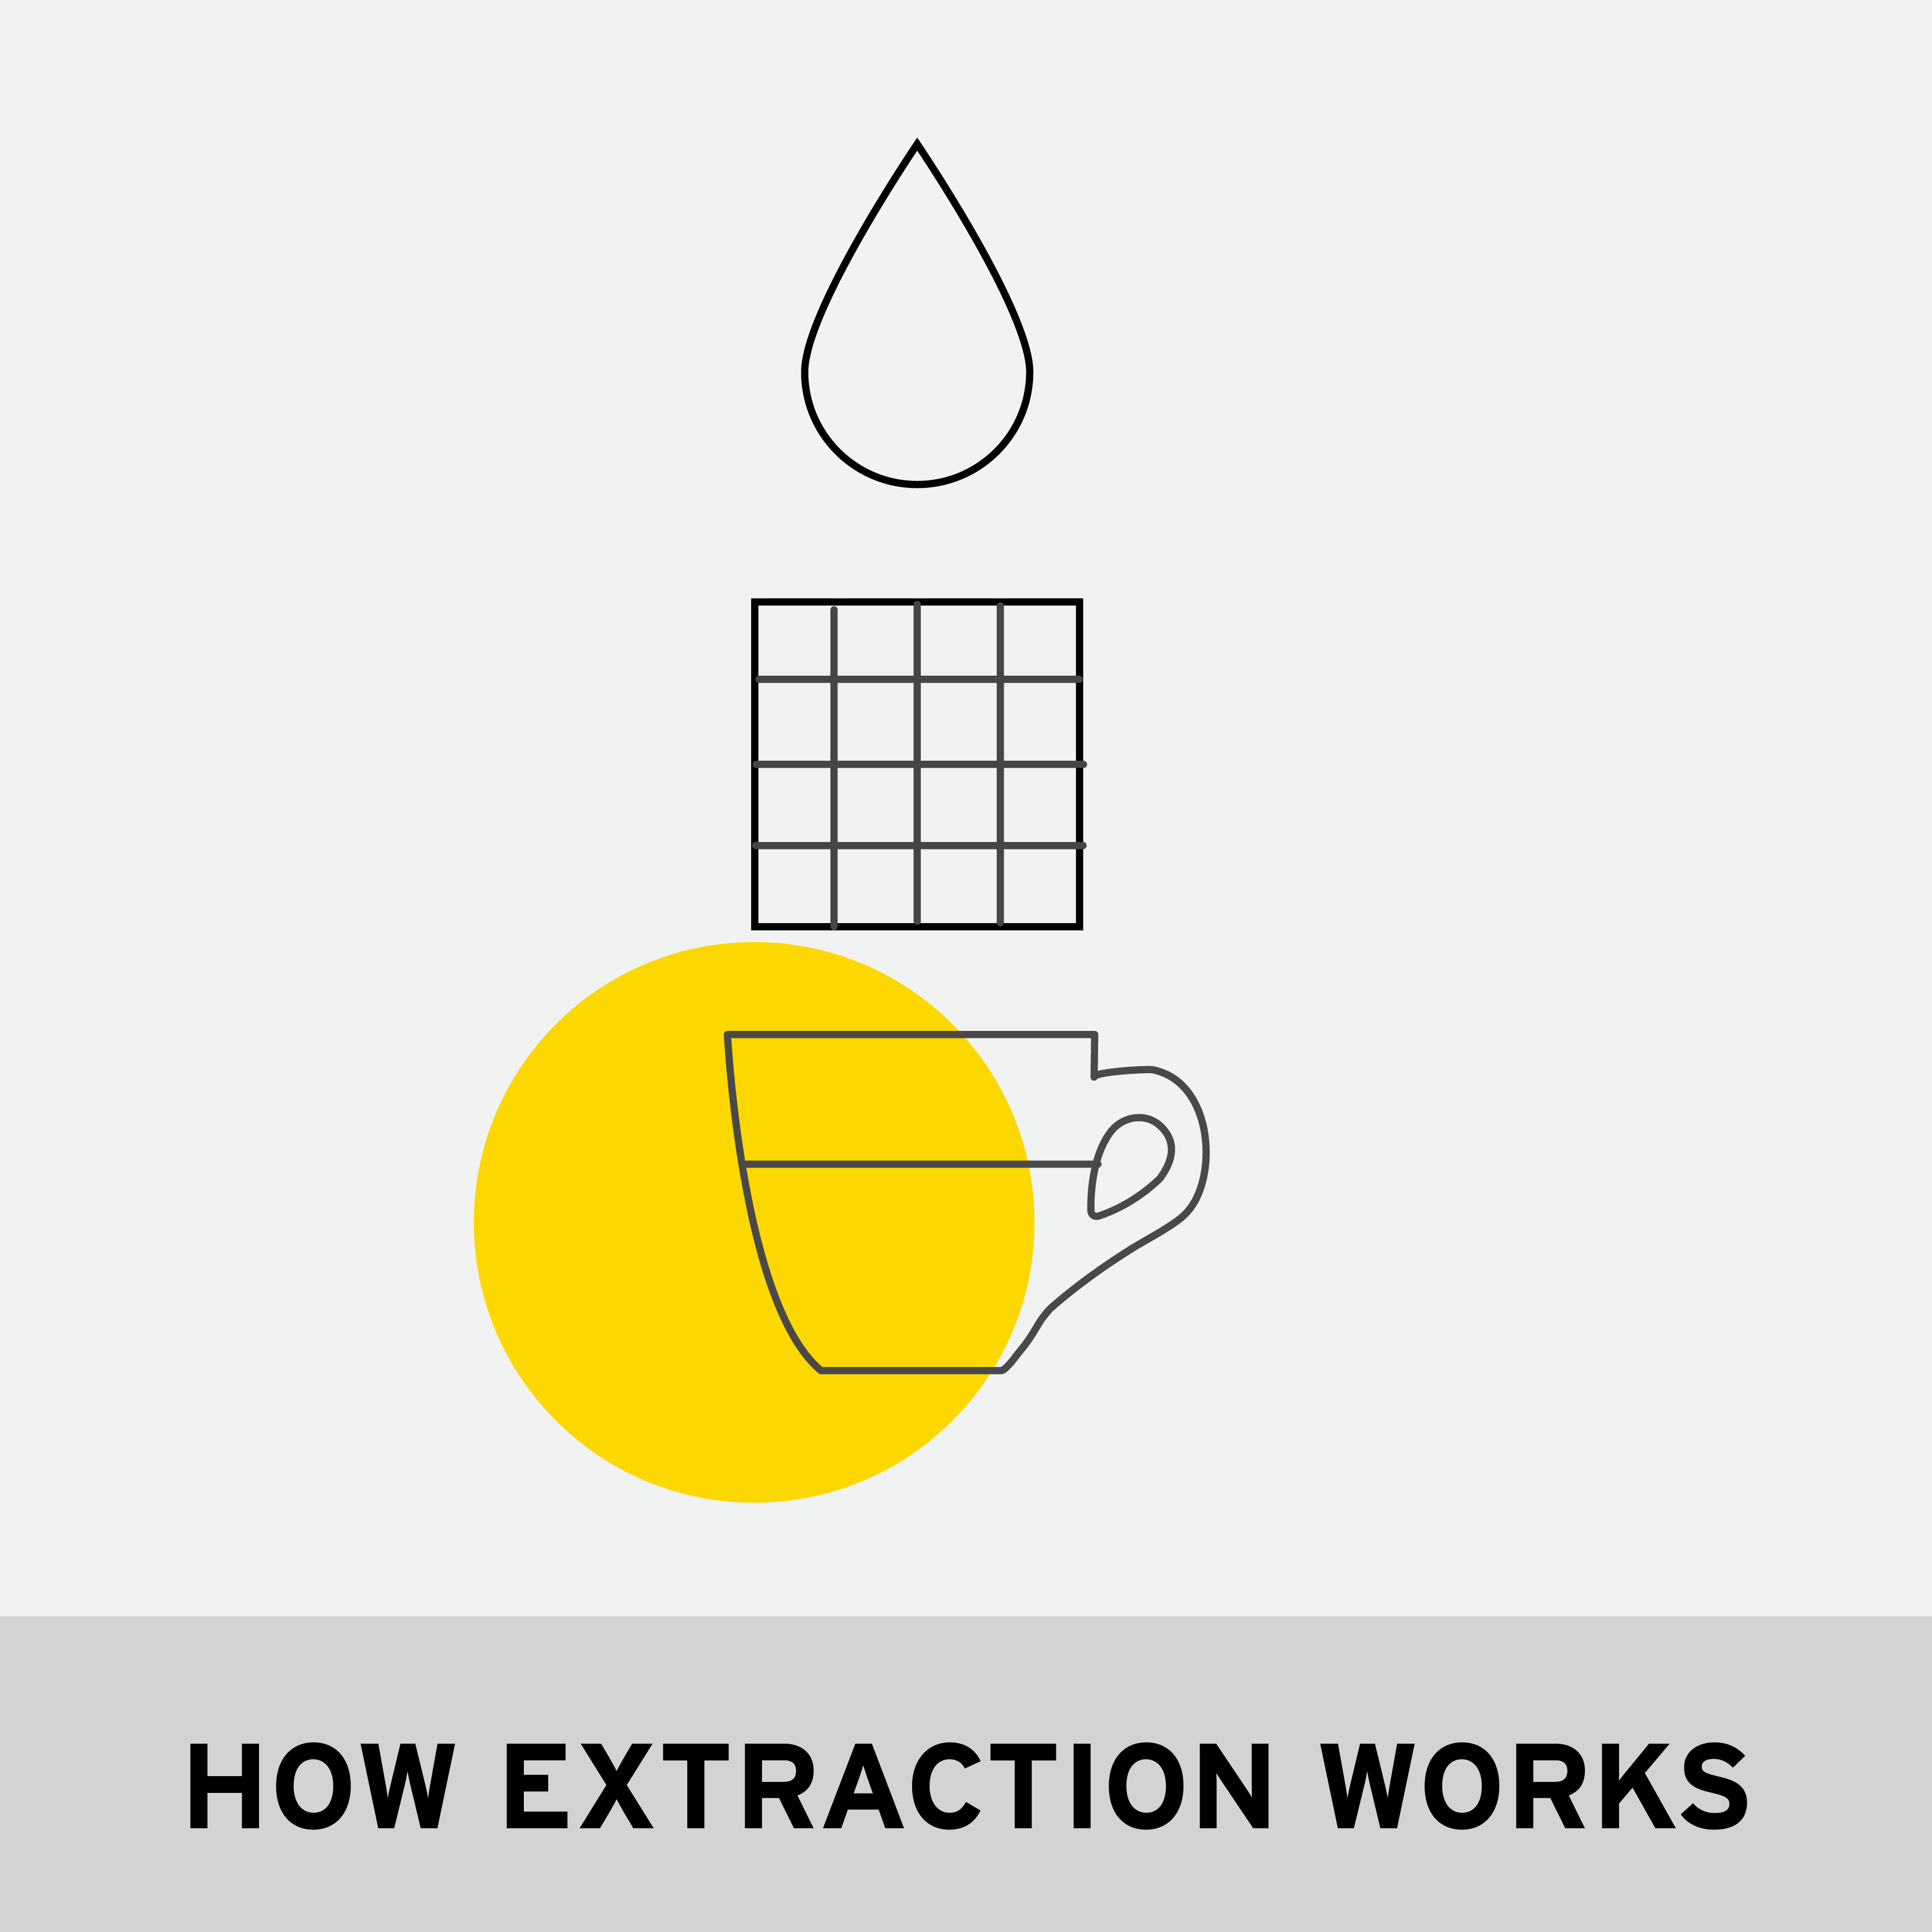 HOW EXTRACTION WORKS